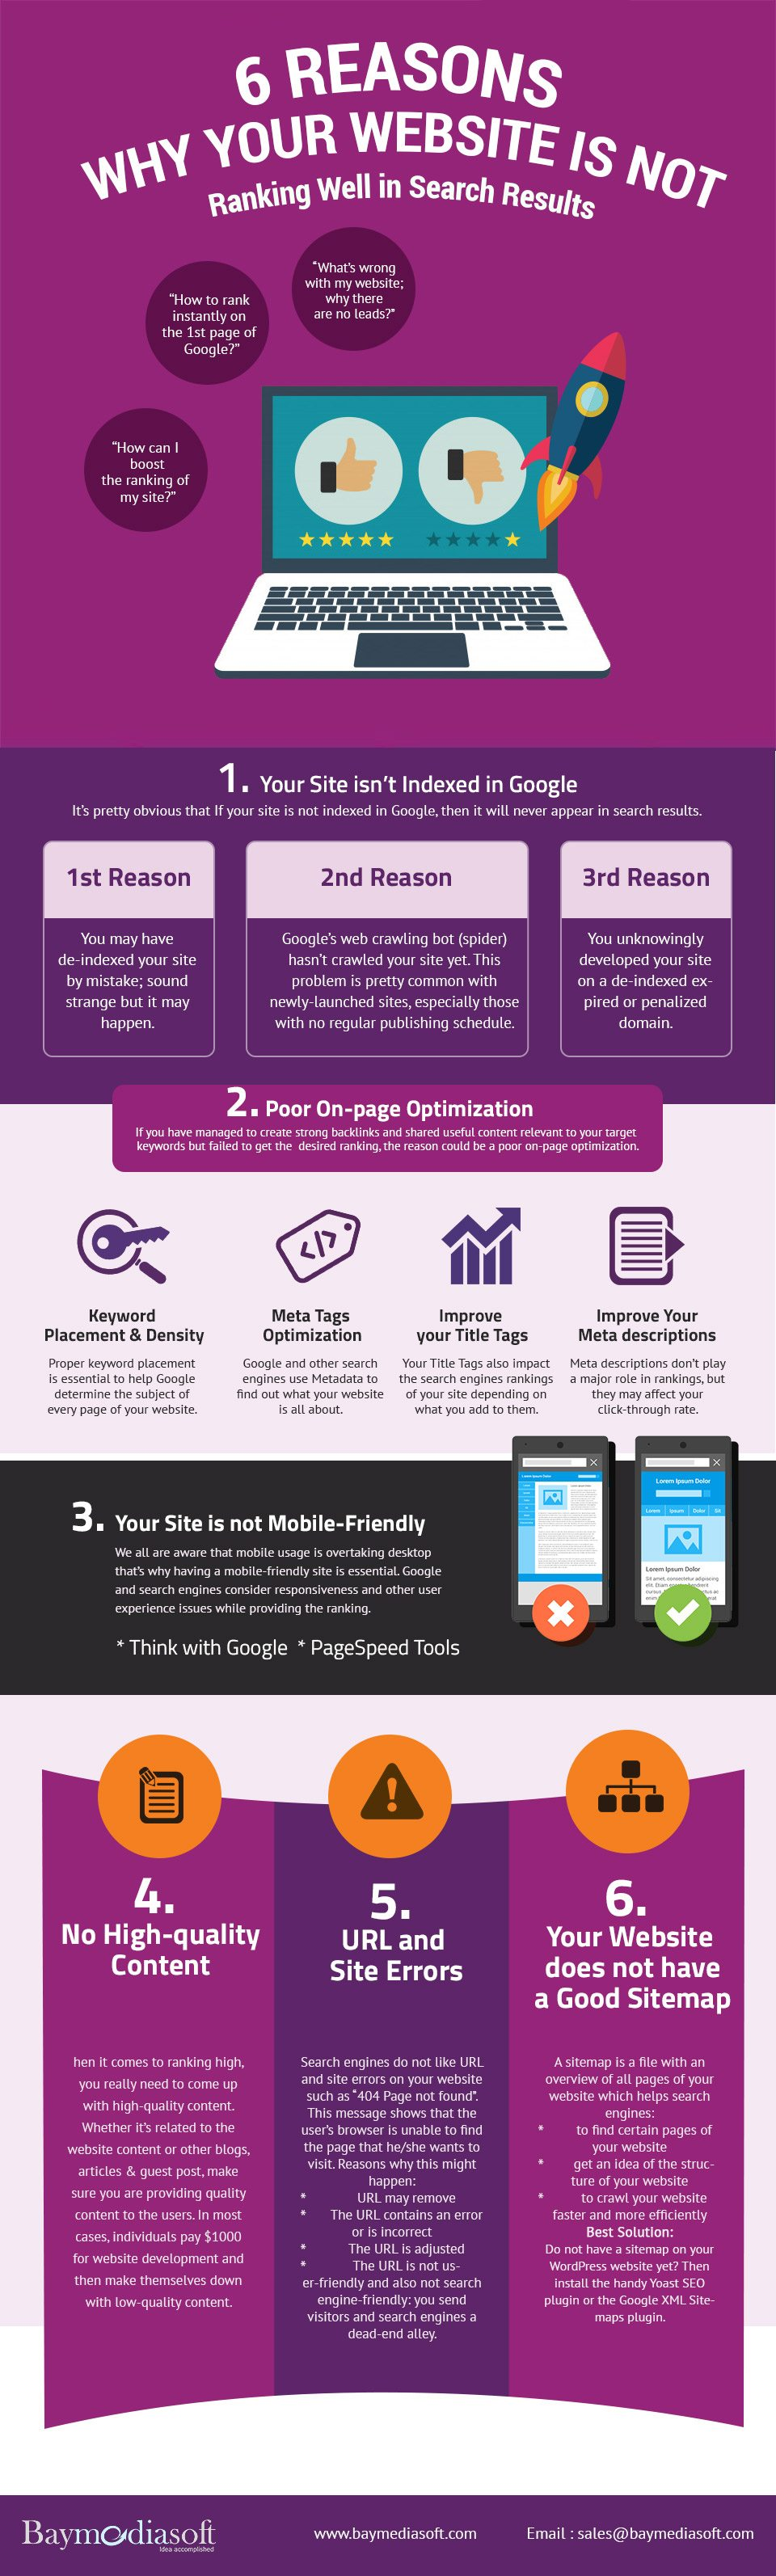 6 Reasons Why Your Website is Not Ranking Well in Search Results [Infographic] | Social Media Today